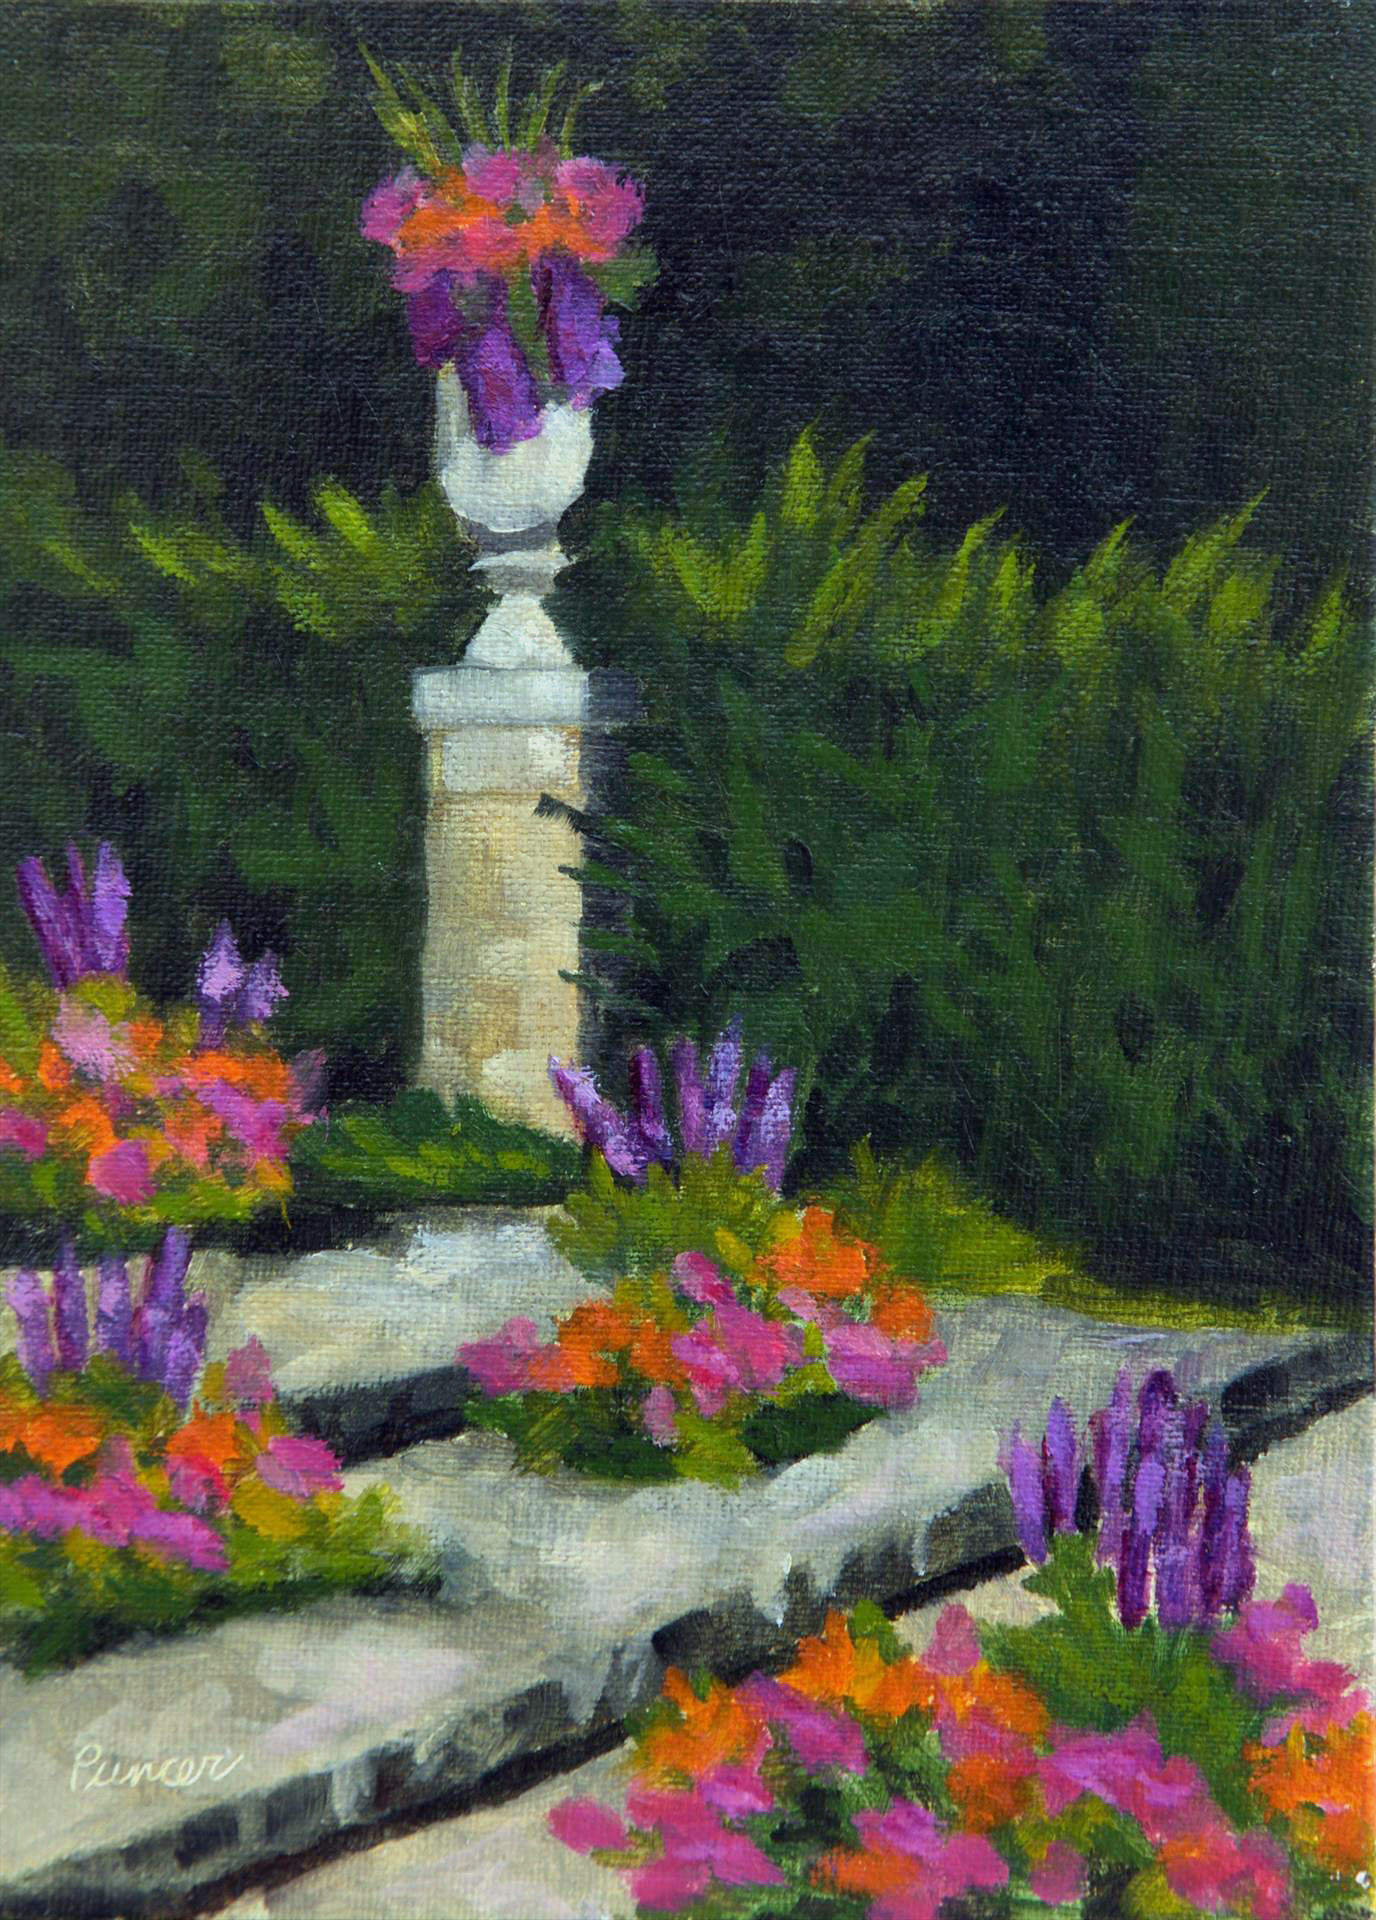 Loretta Puncer | WEGERZYN GARDEN URN | oil on linen panel | 7x5